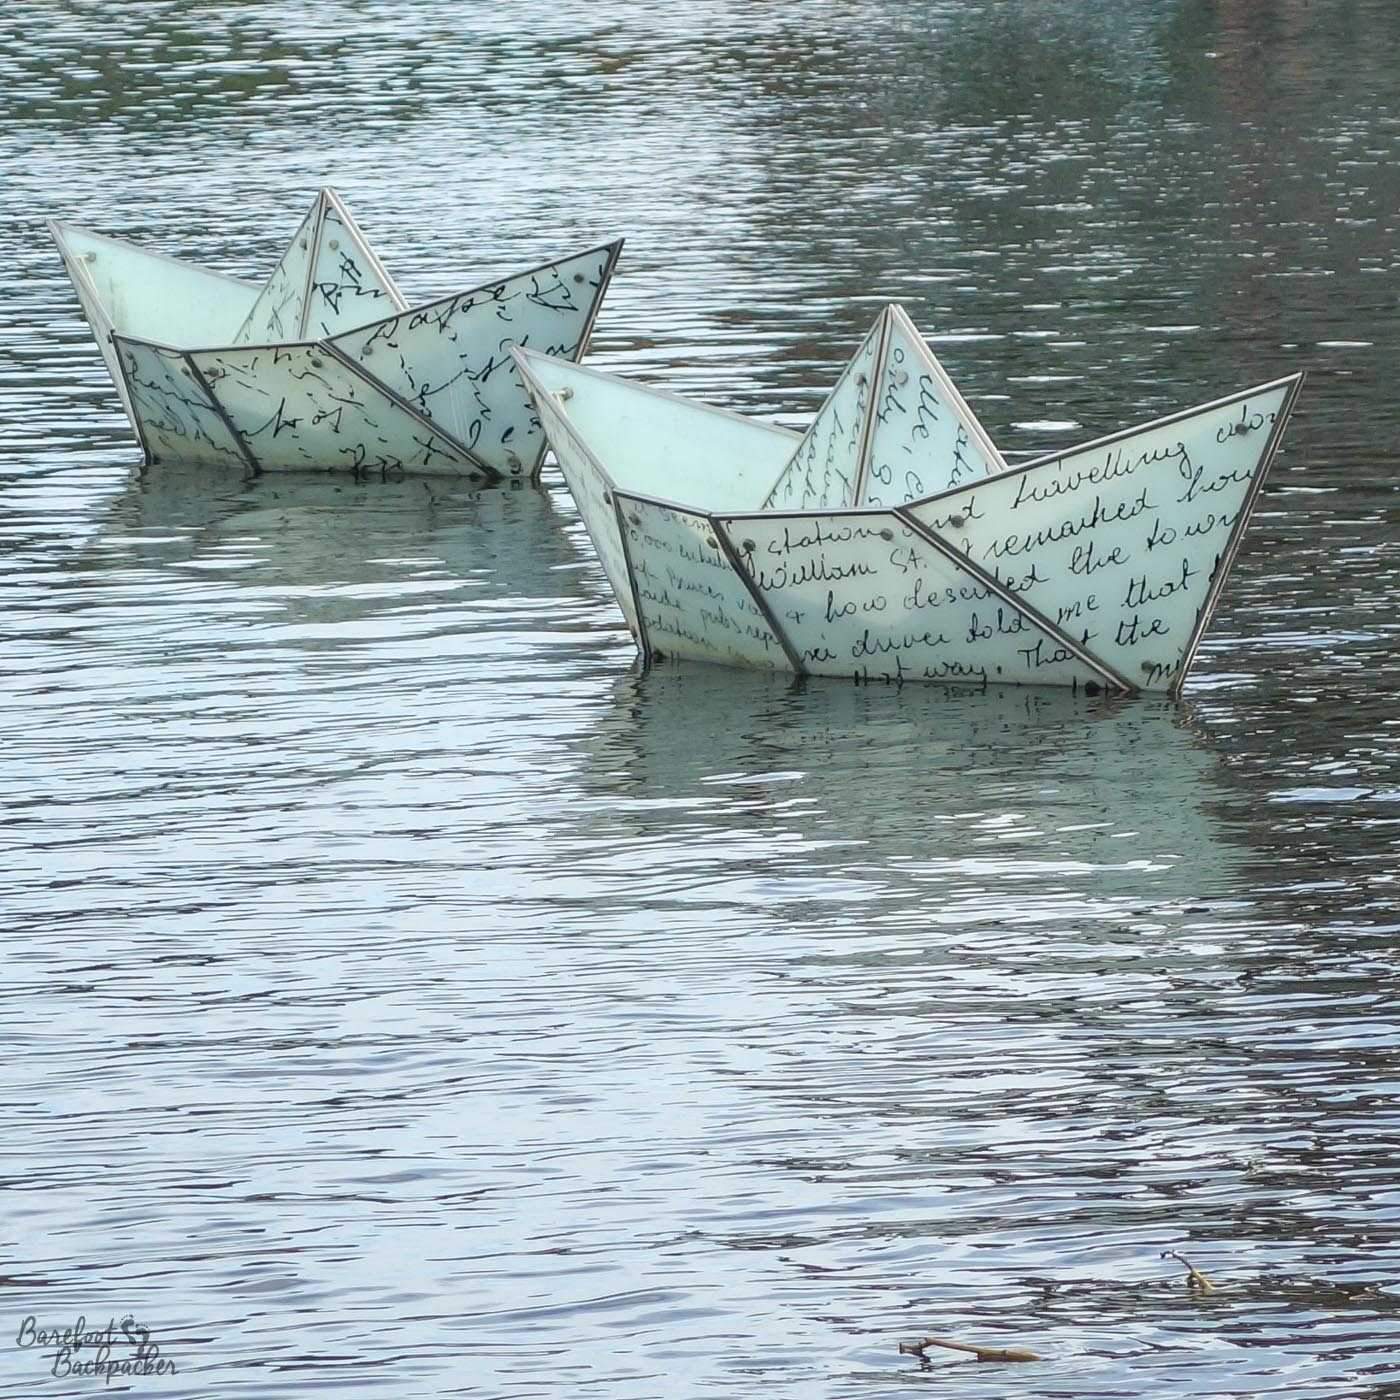 Two small boats that make up the 'Talking Our Way Home' public art piece. They lie in the middle of the river and are in the form of origami boats, and look quite fragile and precarious. On them is written writing but from this distance I can't make out what they say.